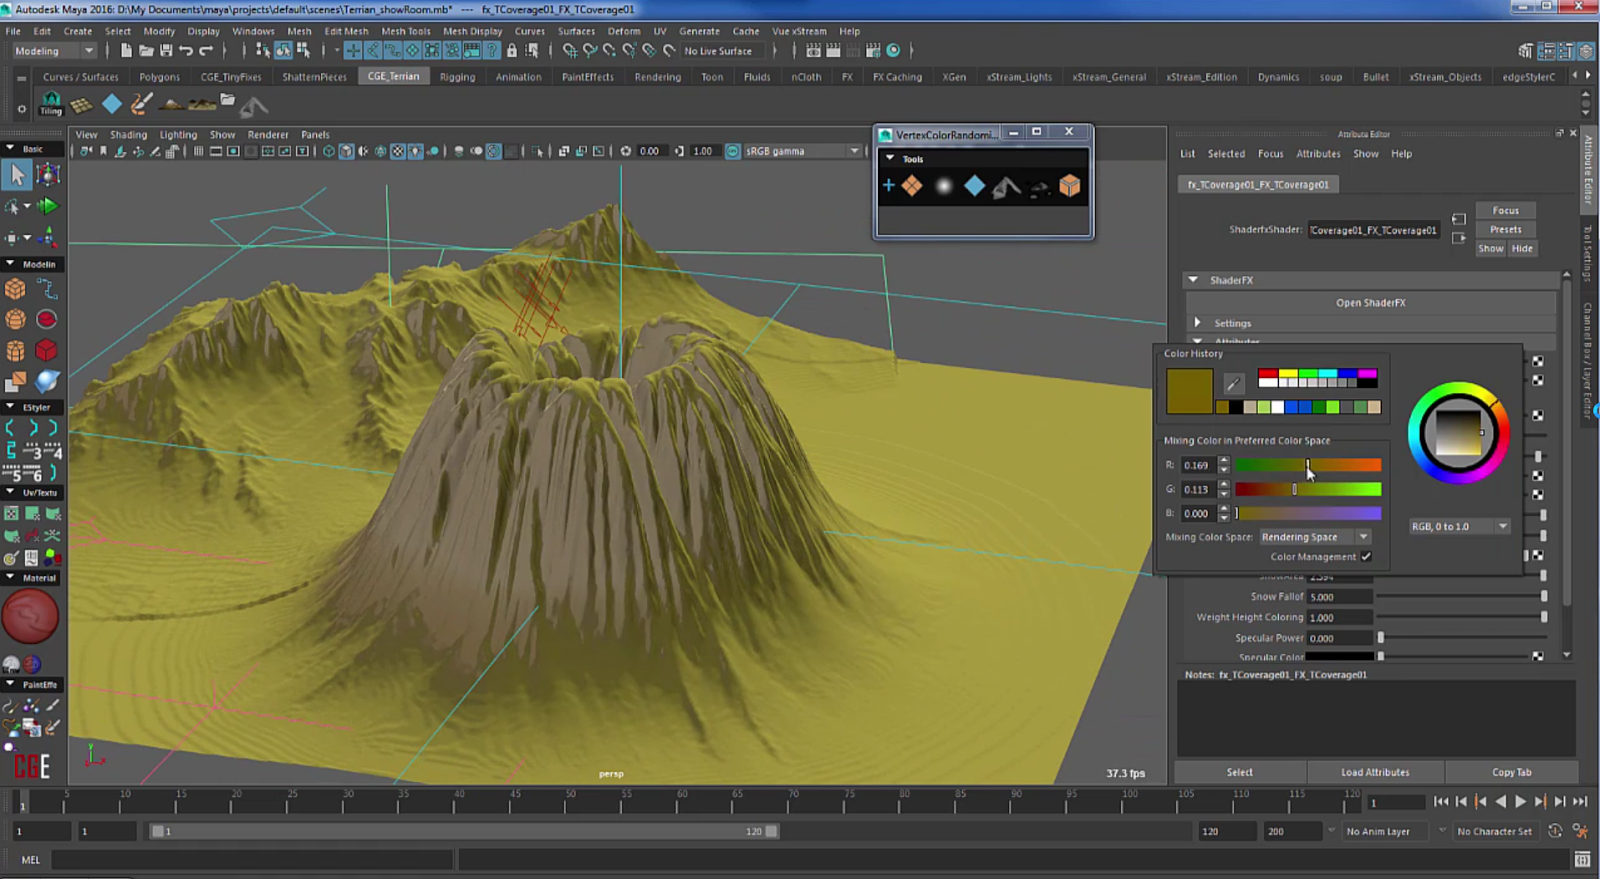 Free Download 3ds Max Plugin Wele to Autodesk App Store for Autodesk